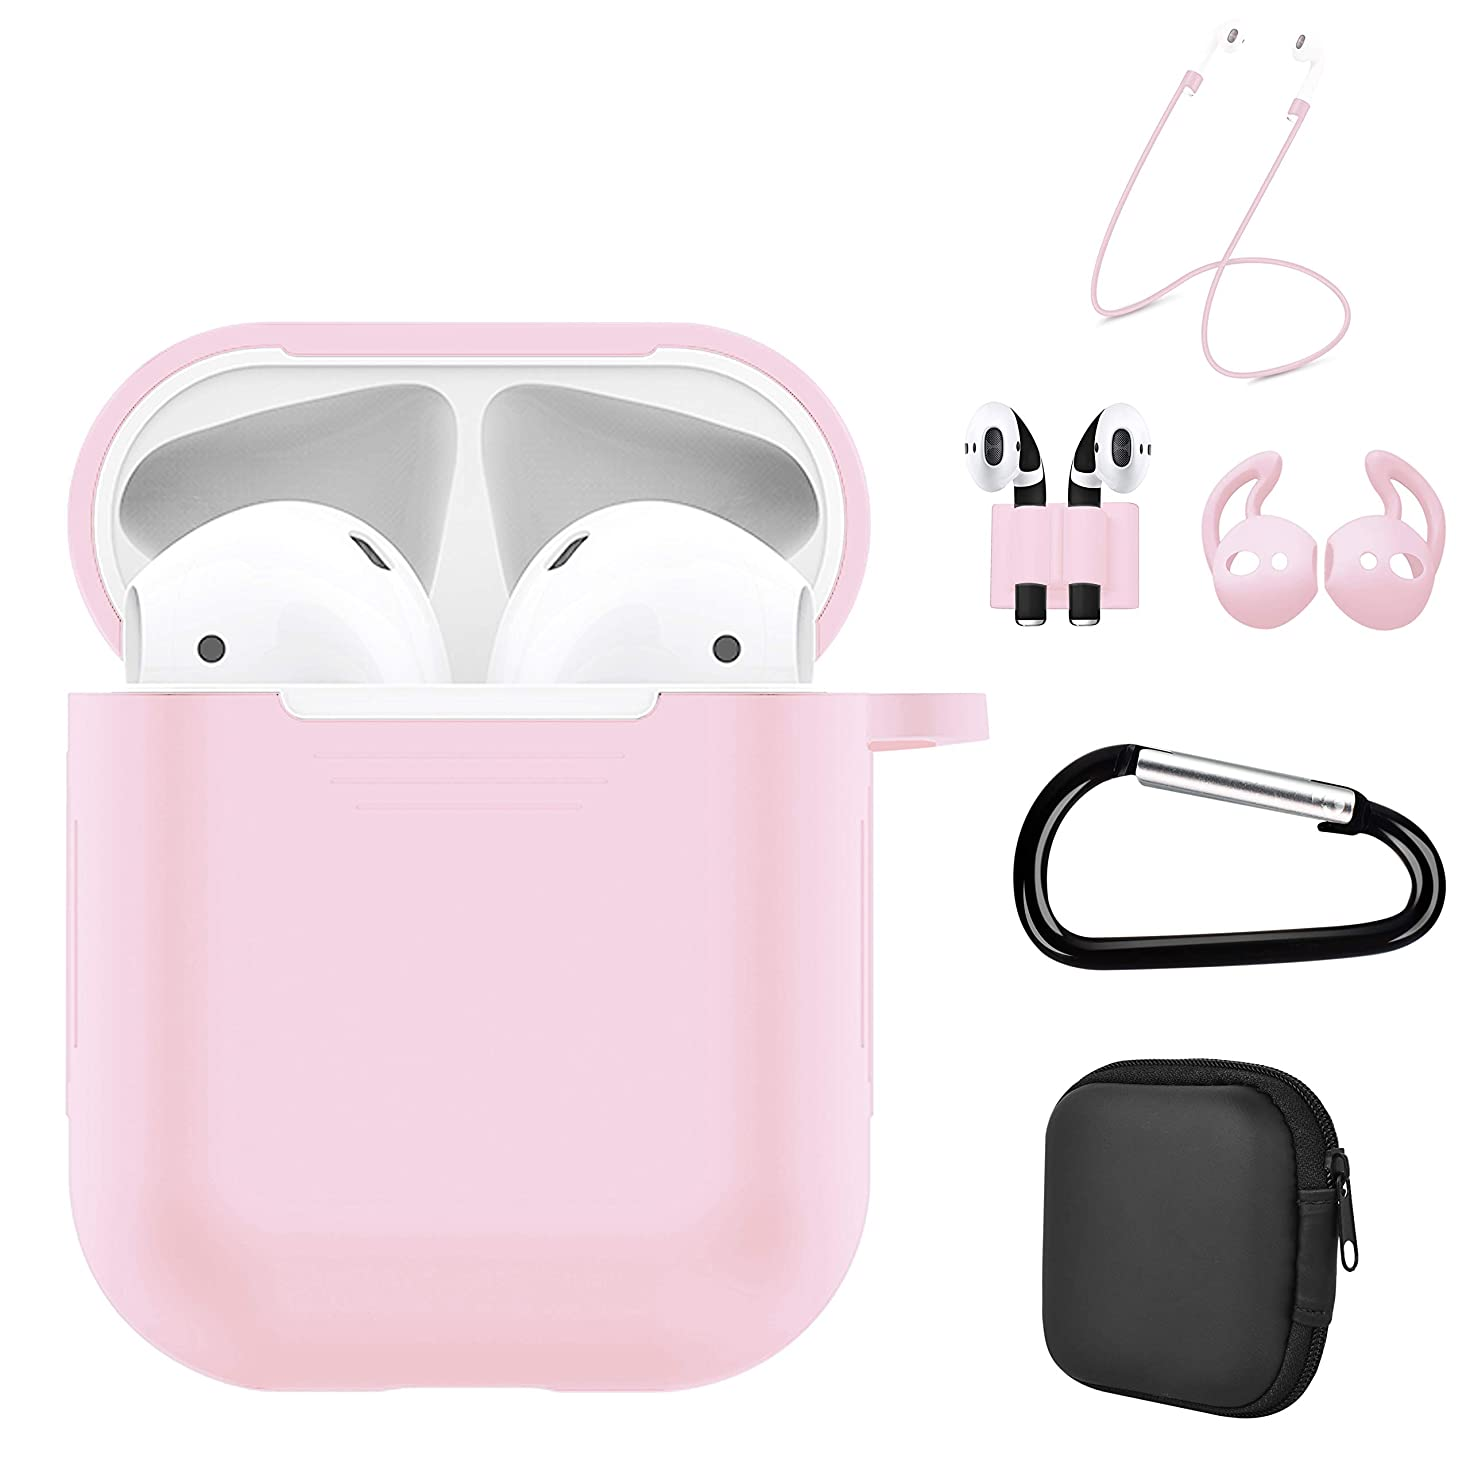 Luvcase 6 in 1 Airpods 2 & 1 Case, Accessories Kits Airpods Charging Cover Skin with Anti-Lost Carabiner Clips Keychain/Ear Hook Grips/Airpods Straps/Watch Band Holder/Airpods Case Holder (Baby Pink)